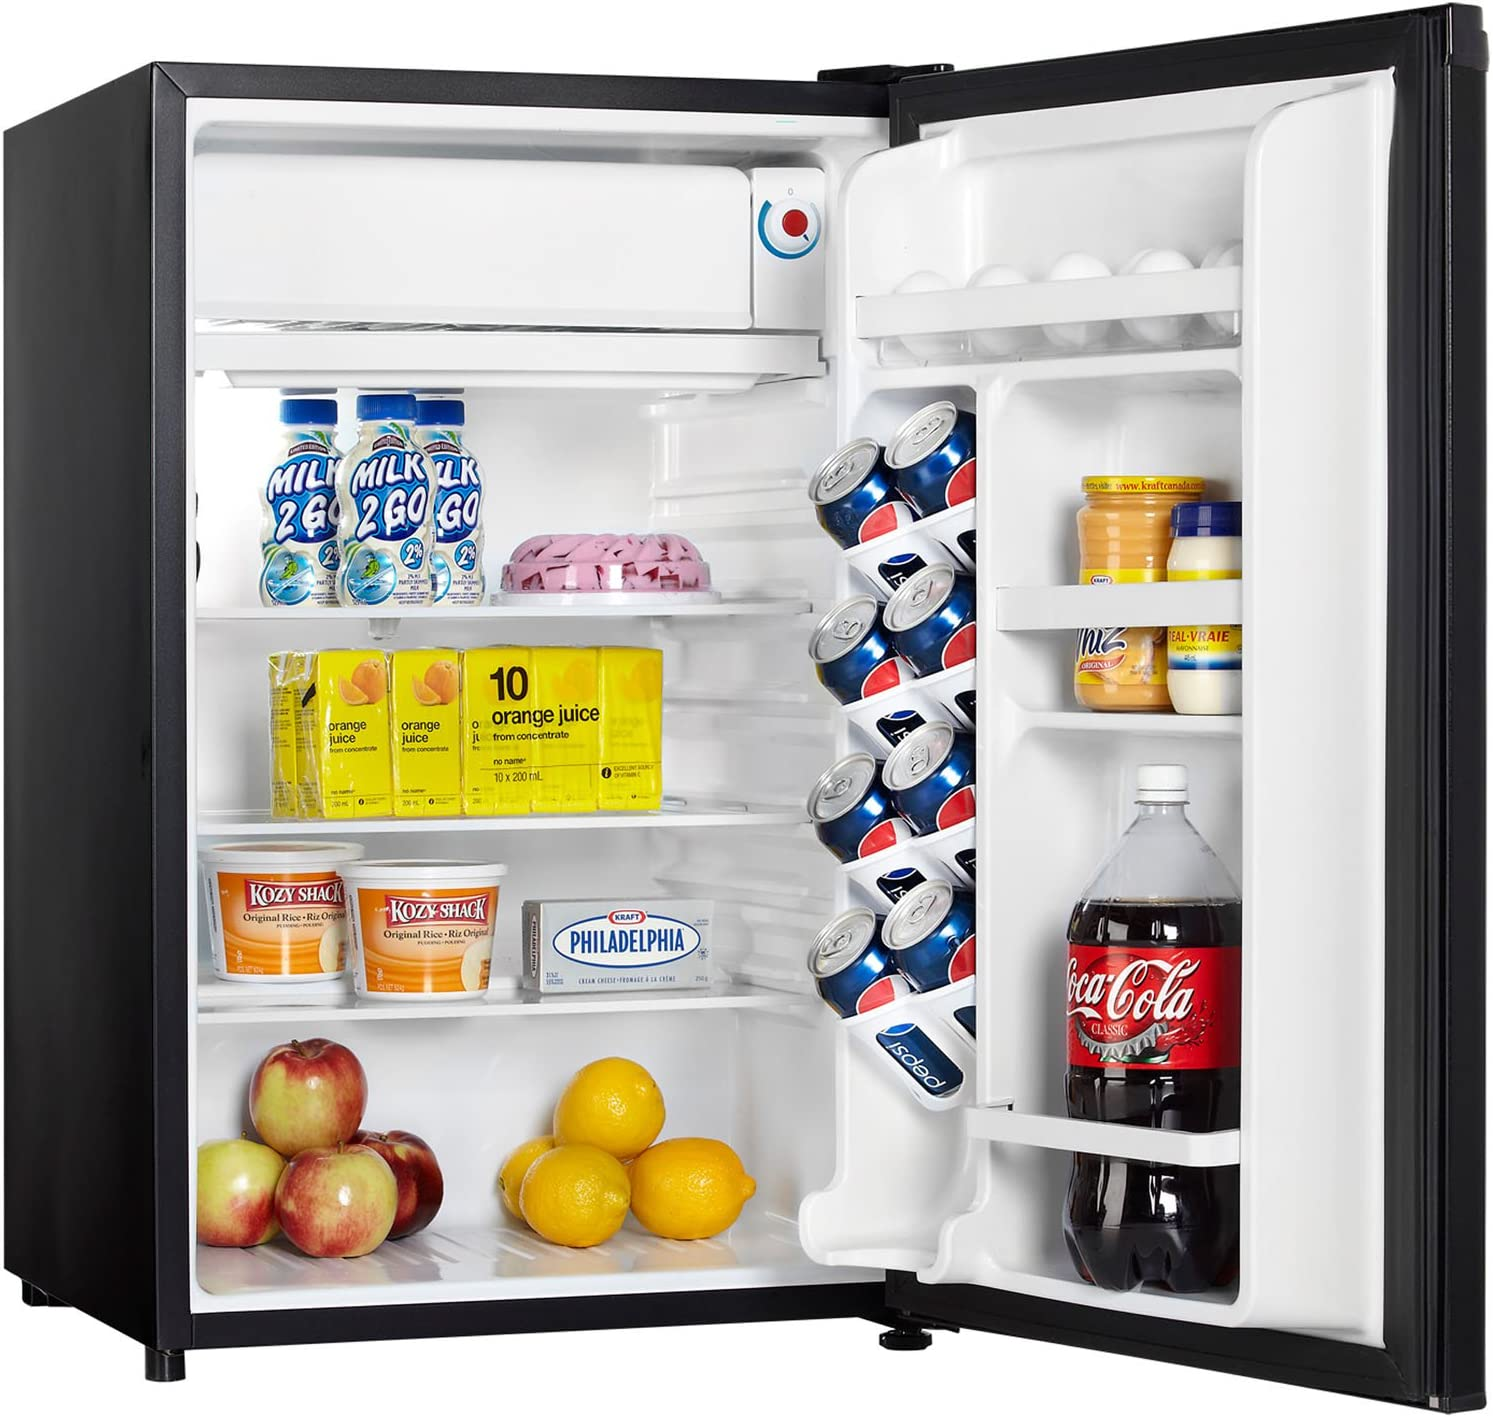 81596LHHwBL. AC SL1500 The Best Beer Fridge for 16 Oz Can 2021 (Review)